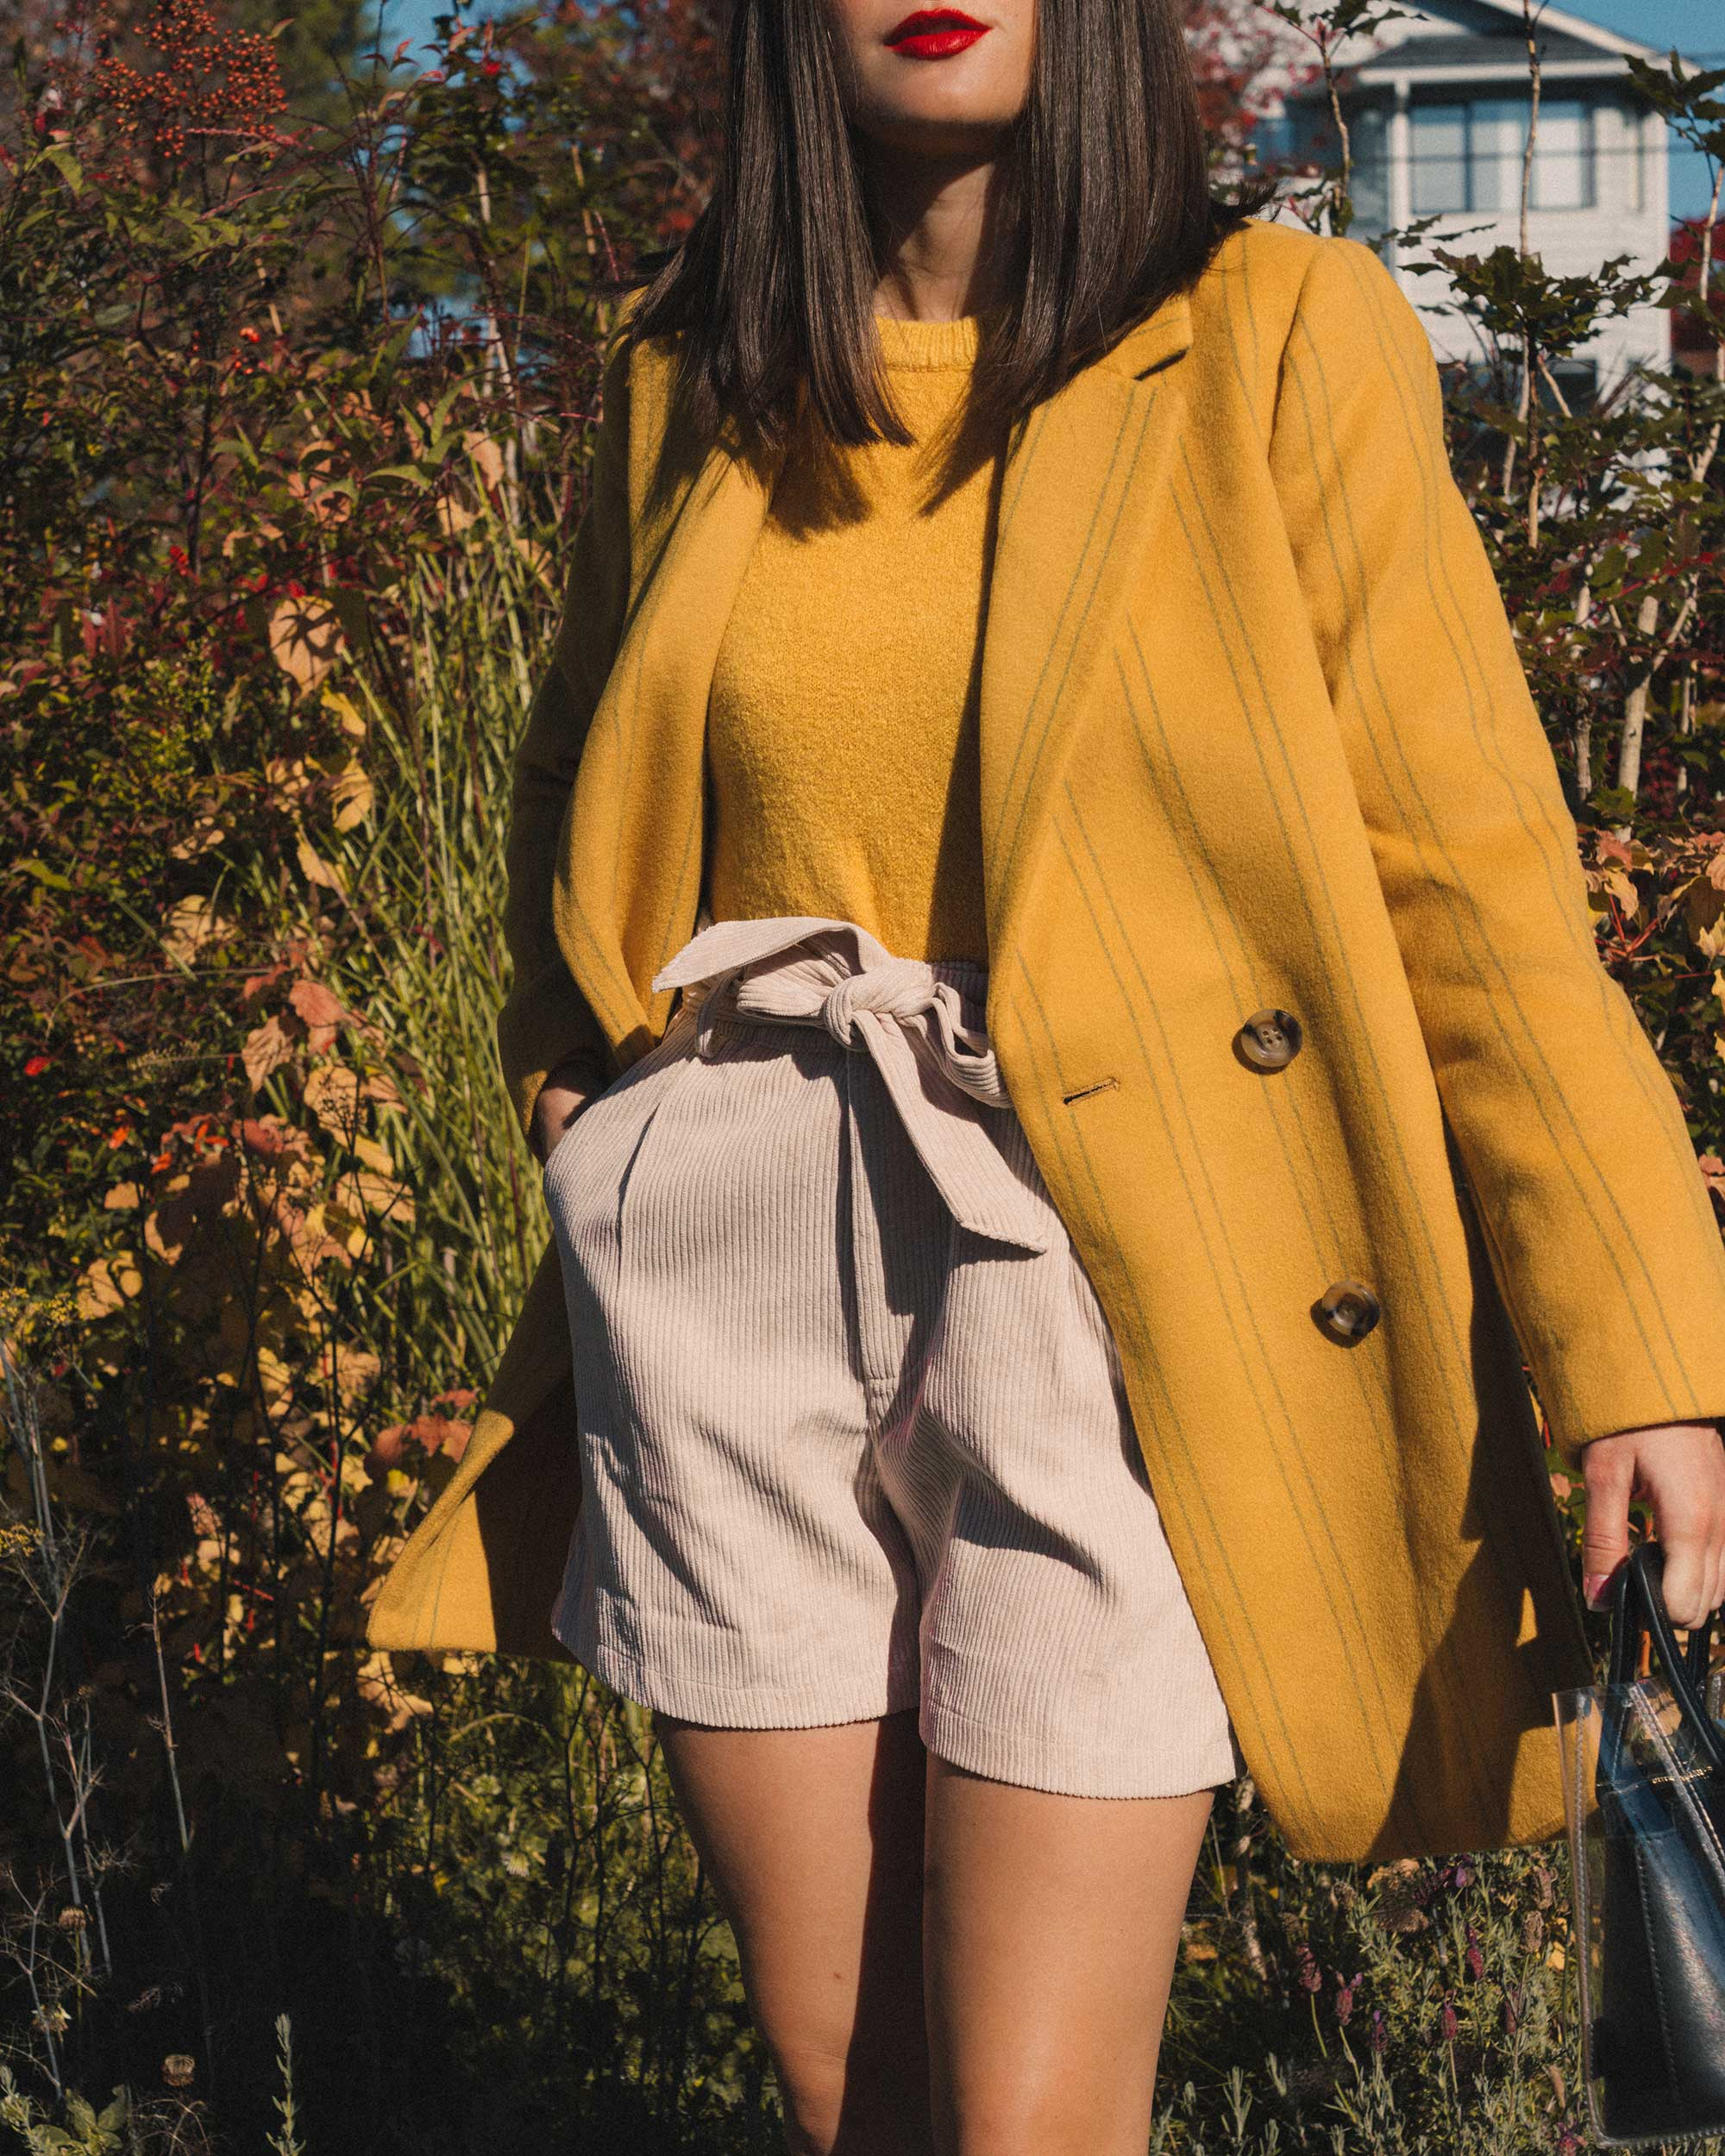 Madewell Hollis Double-Breasted Stripe Yellow Blazer Coat, corduroy shorts, fall outfit, fall leaves in Seattle 15.jpg